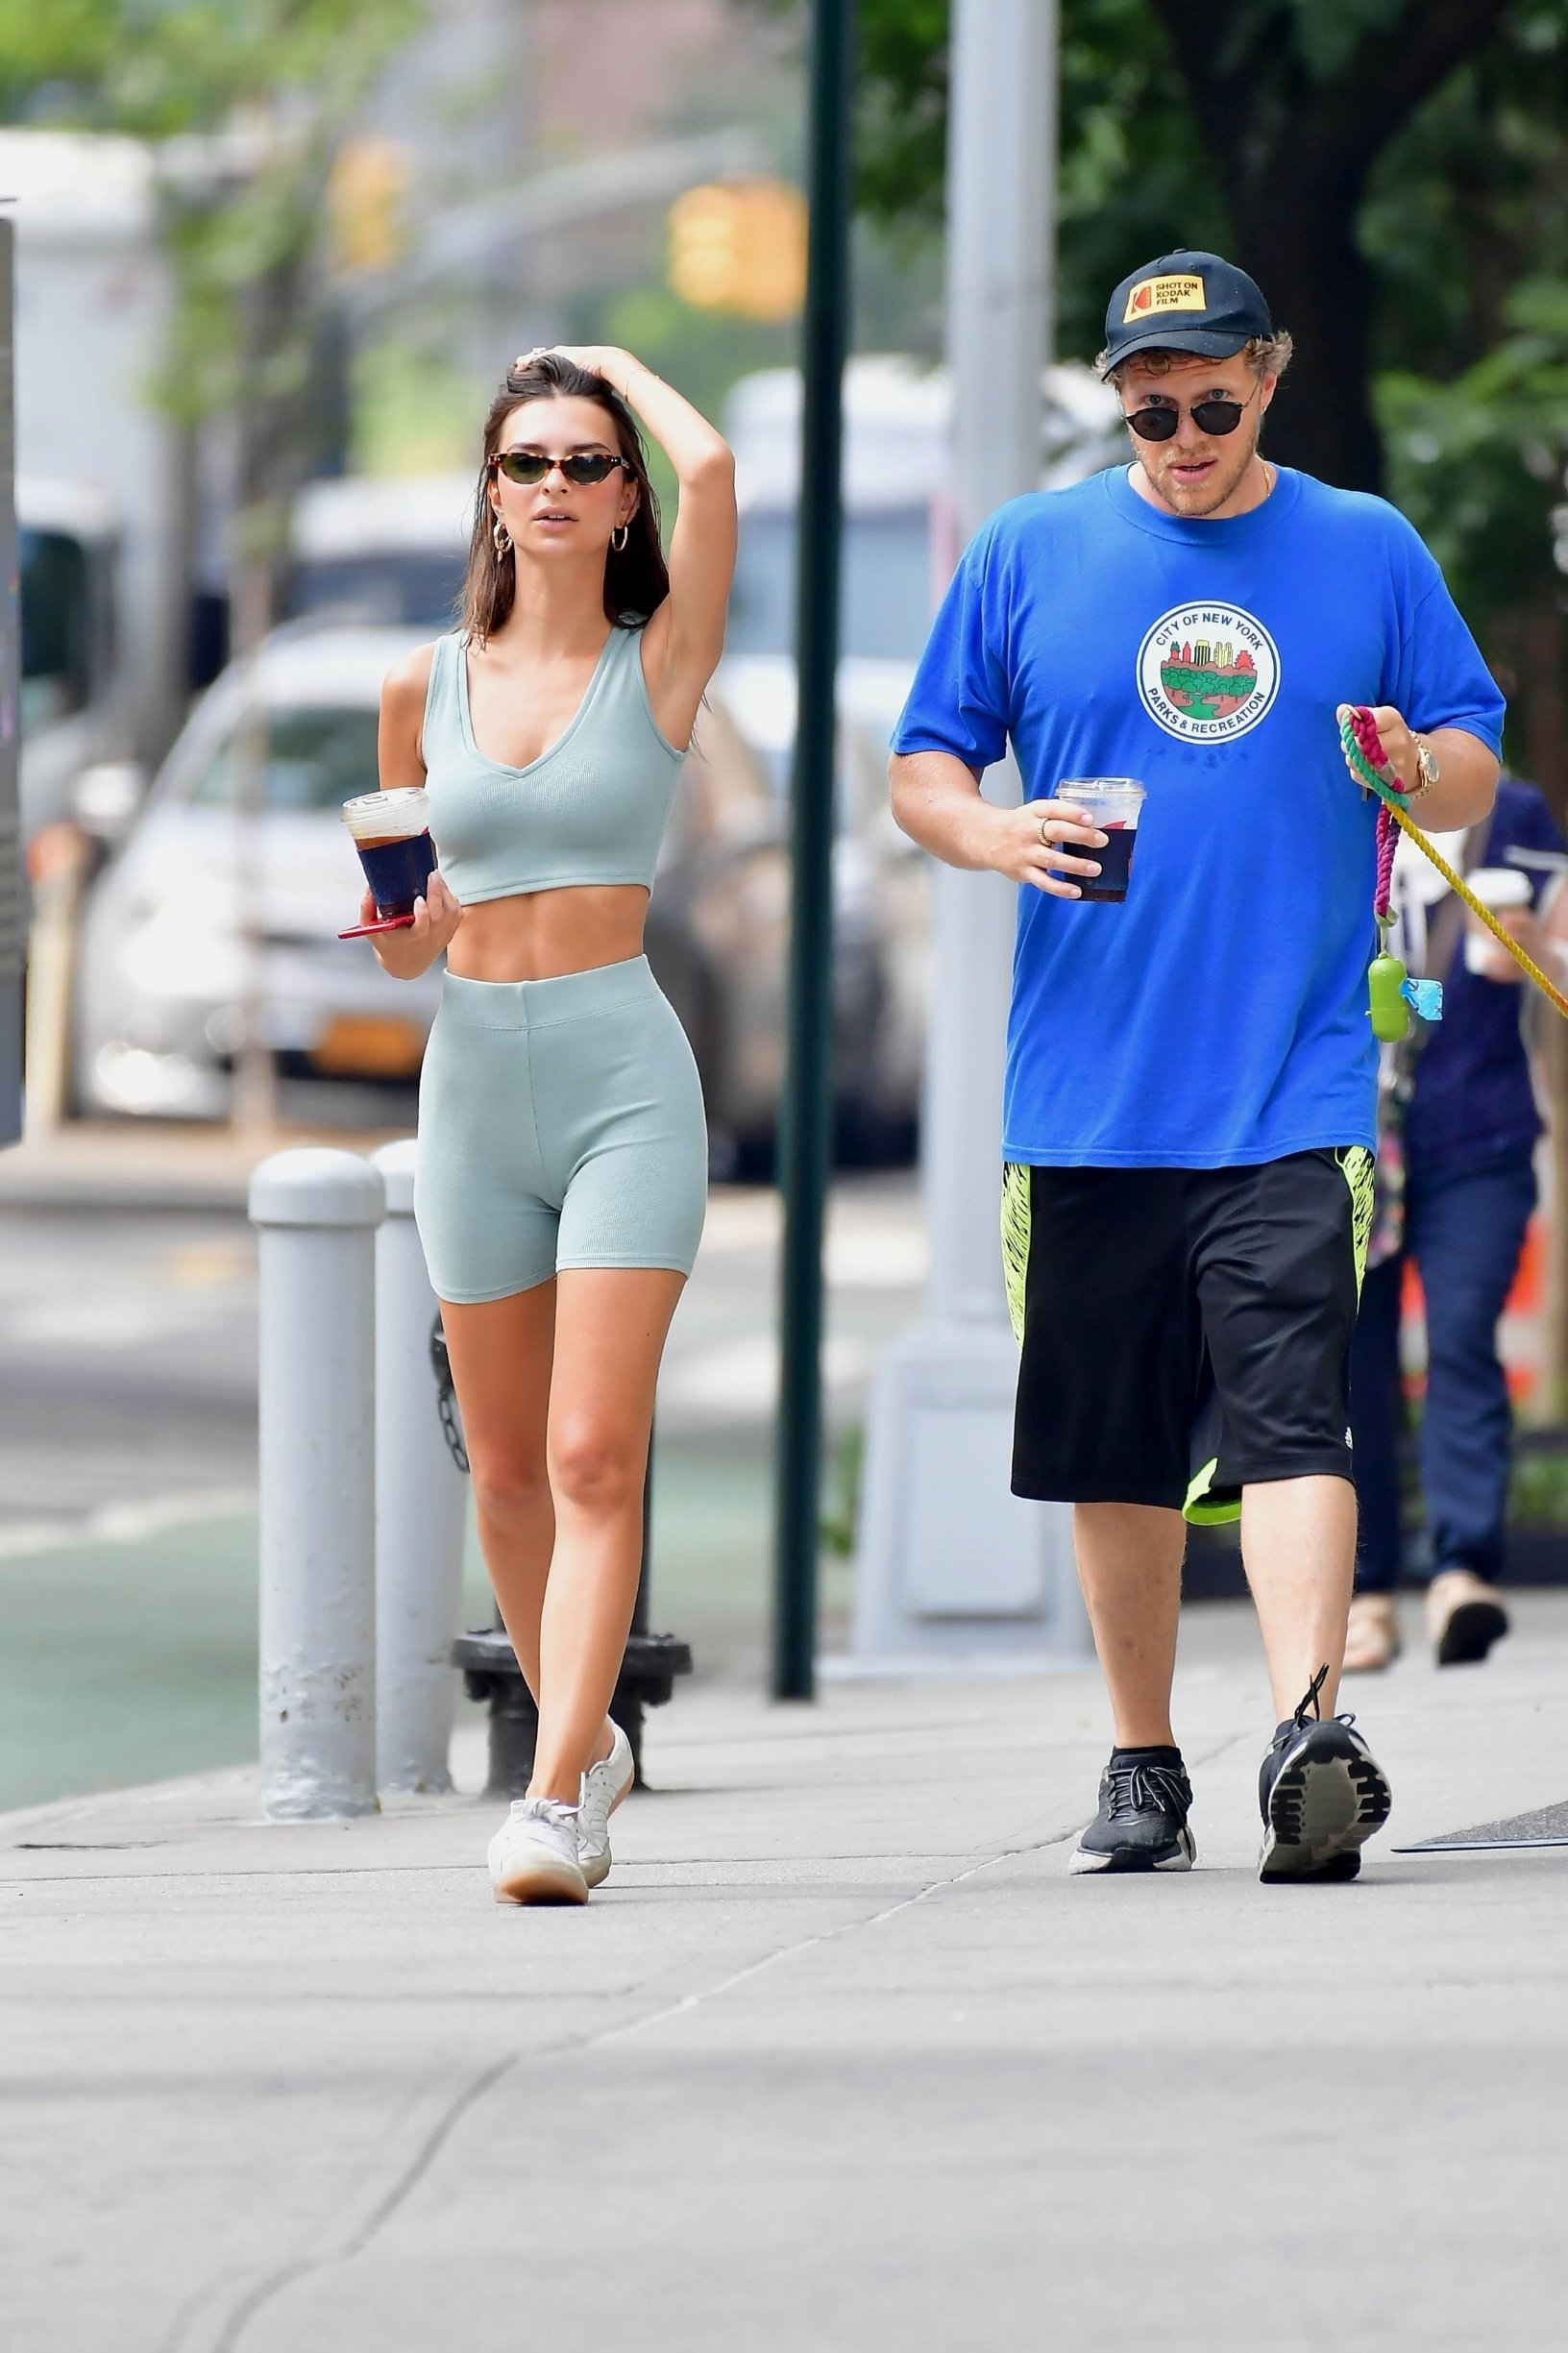 New York, NY  - Model and Actress, Emily Ratjakowski stops traffic and turns heads showing off her sexy physique in a monochromatic biker shot set while walking her pup colombo with husband Sebastian Bear-McClard.  BACKGRID USA 6 JULY 2019, Image: 454936433, License: Rights-managed, Restrictions: RIGHTS: WORLDWIDE EXCEPT IN GERMANY, POLAND, Model Release: no, Credit line: Profimedia, Backgrid USA